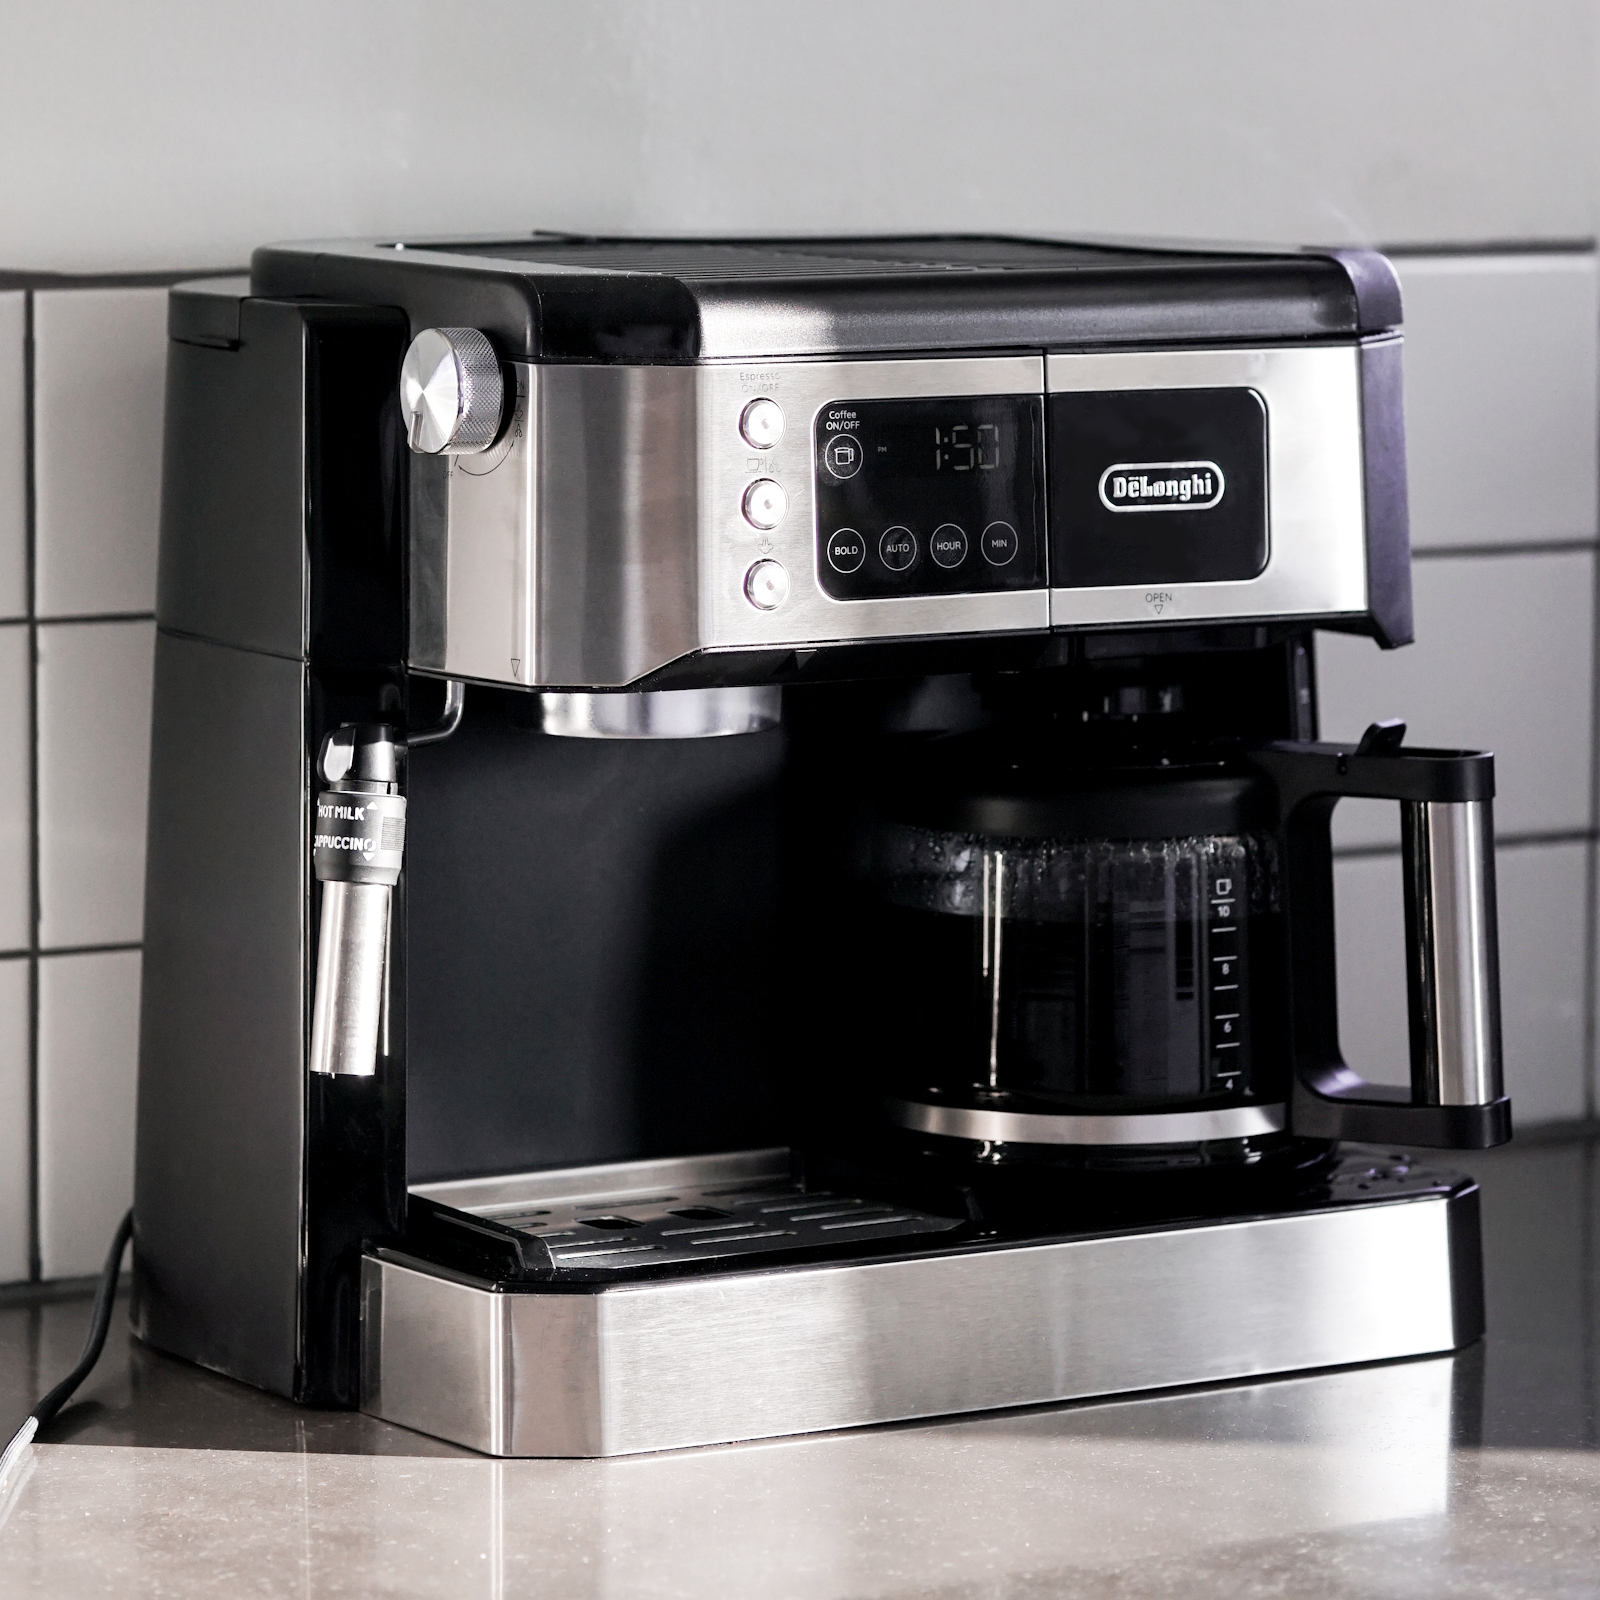 DeLonghi All in One COM532M review-16